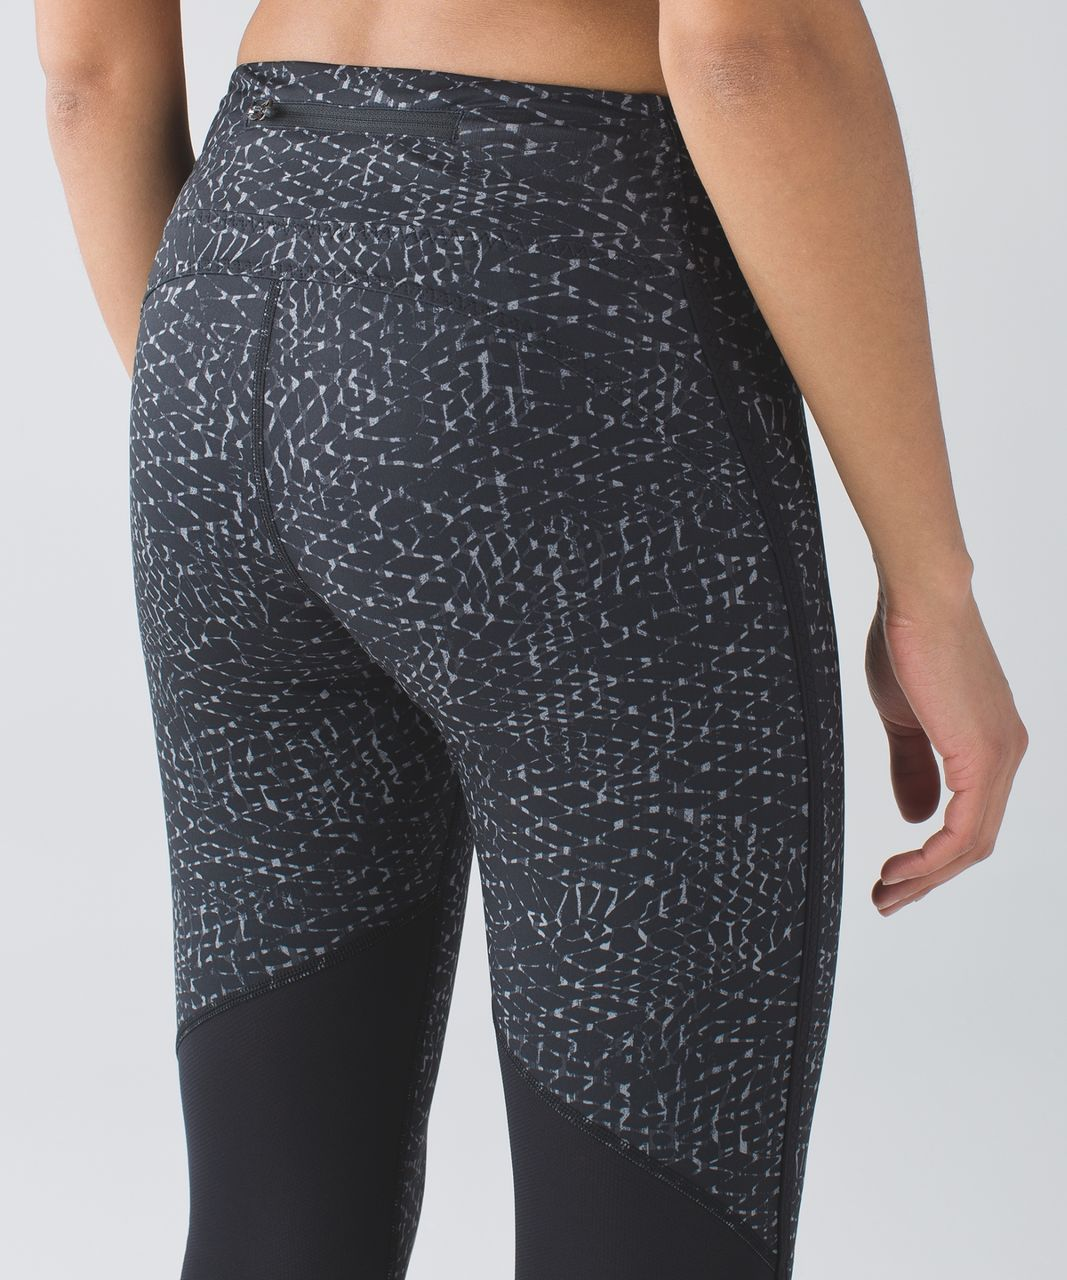 Lululemon Real Quick Crop - Samba Snake Battleship Black / Black